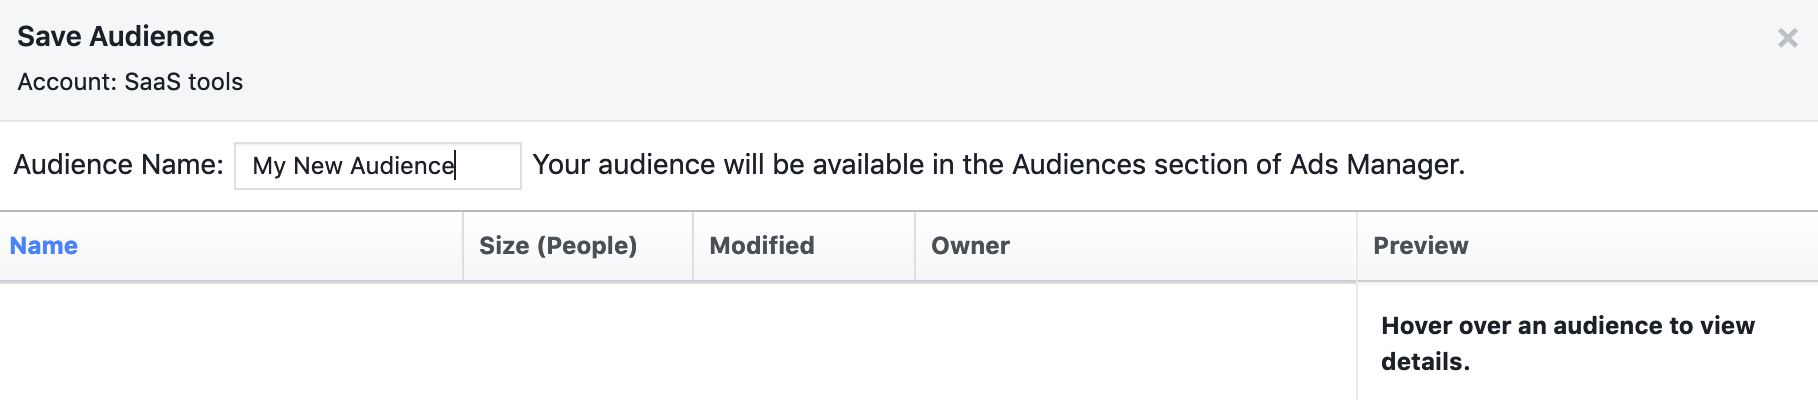 save audience facebook audience insights